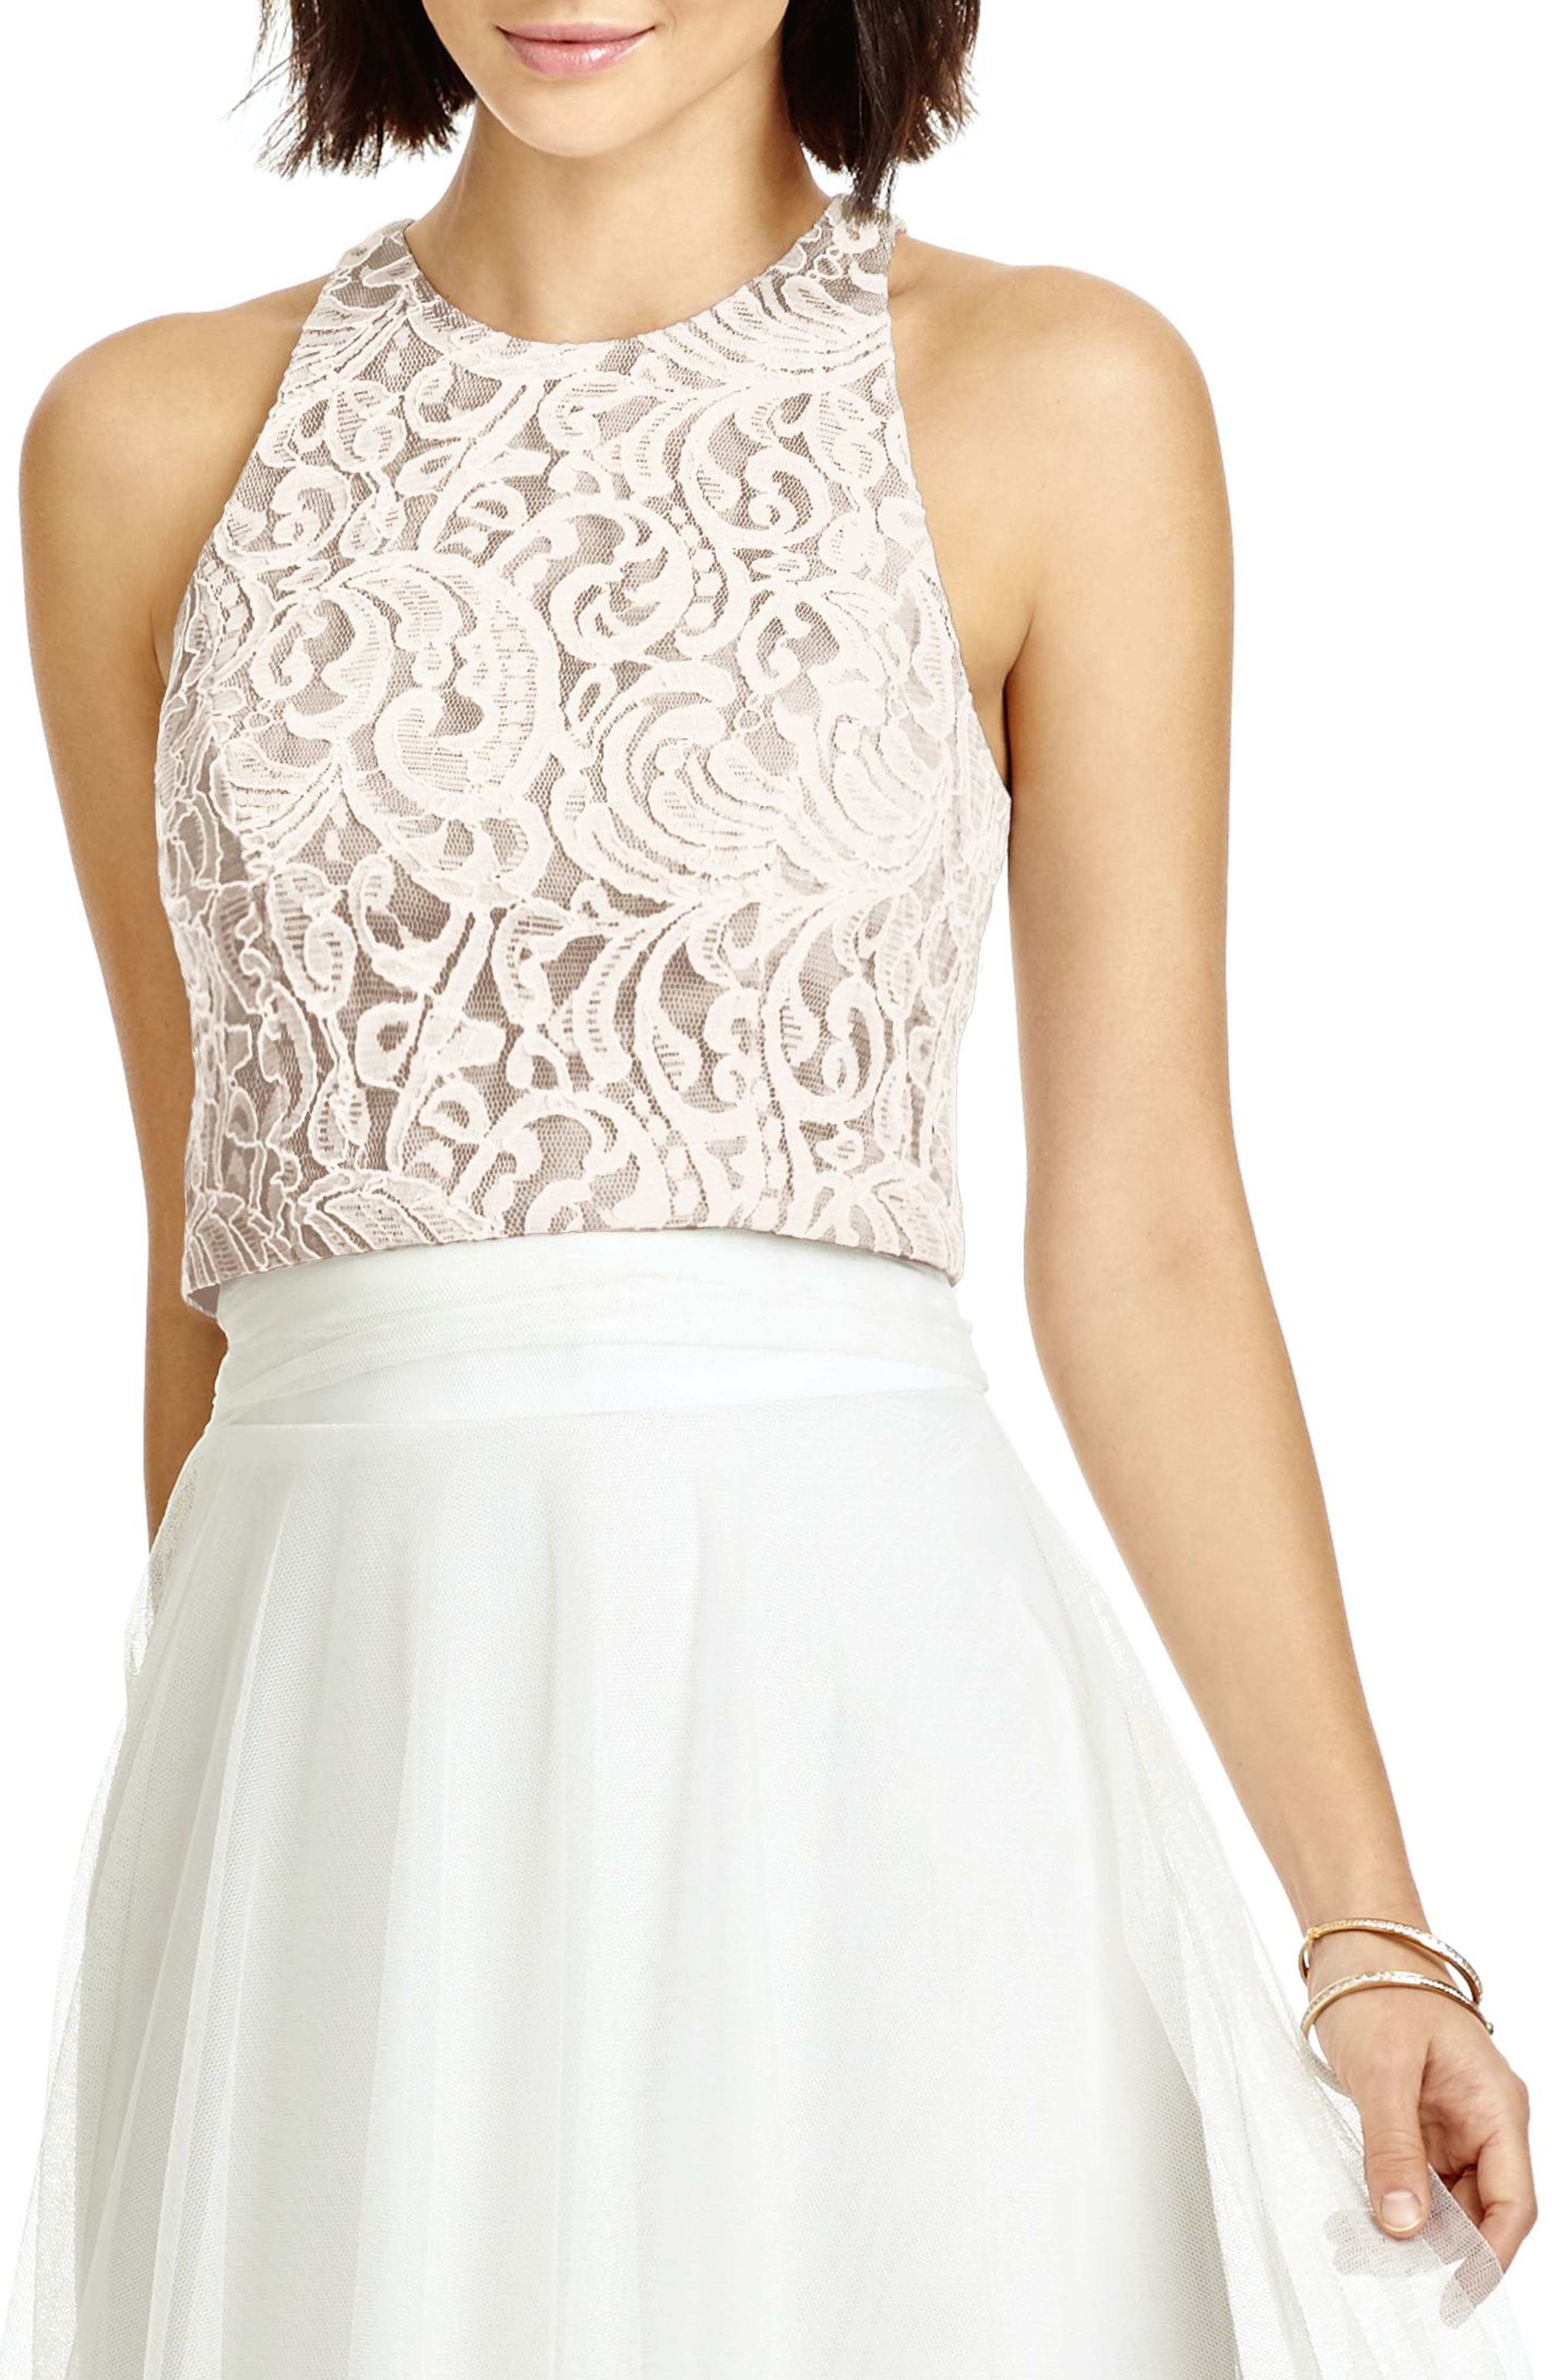 DESSY COLLECTION, Lace Halter Style Crop Top, Main thumbnail 1, color, IVORY LACE/ TOPAZ/ IVORY